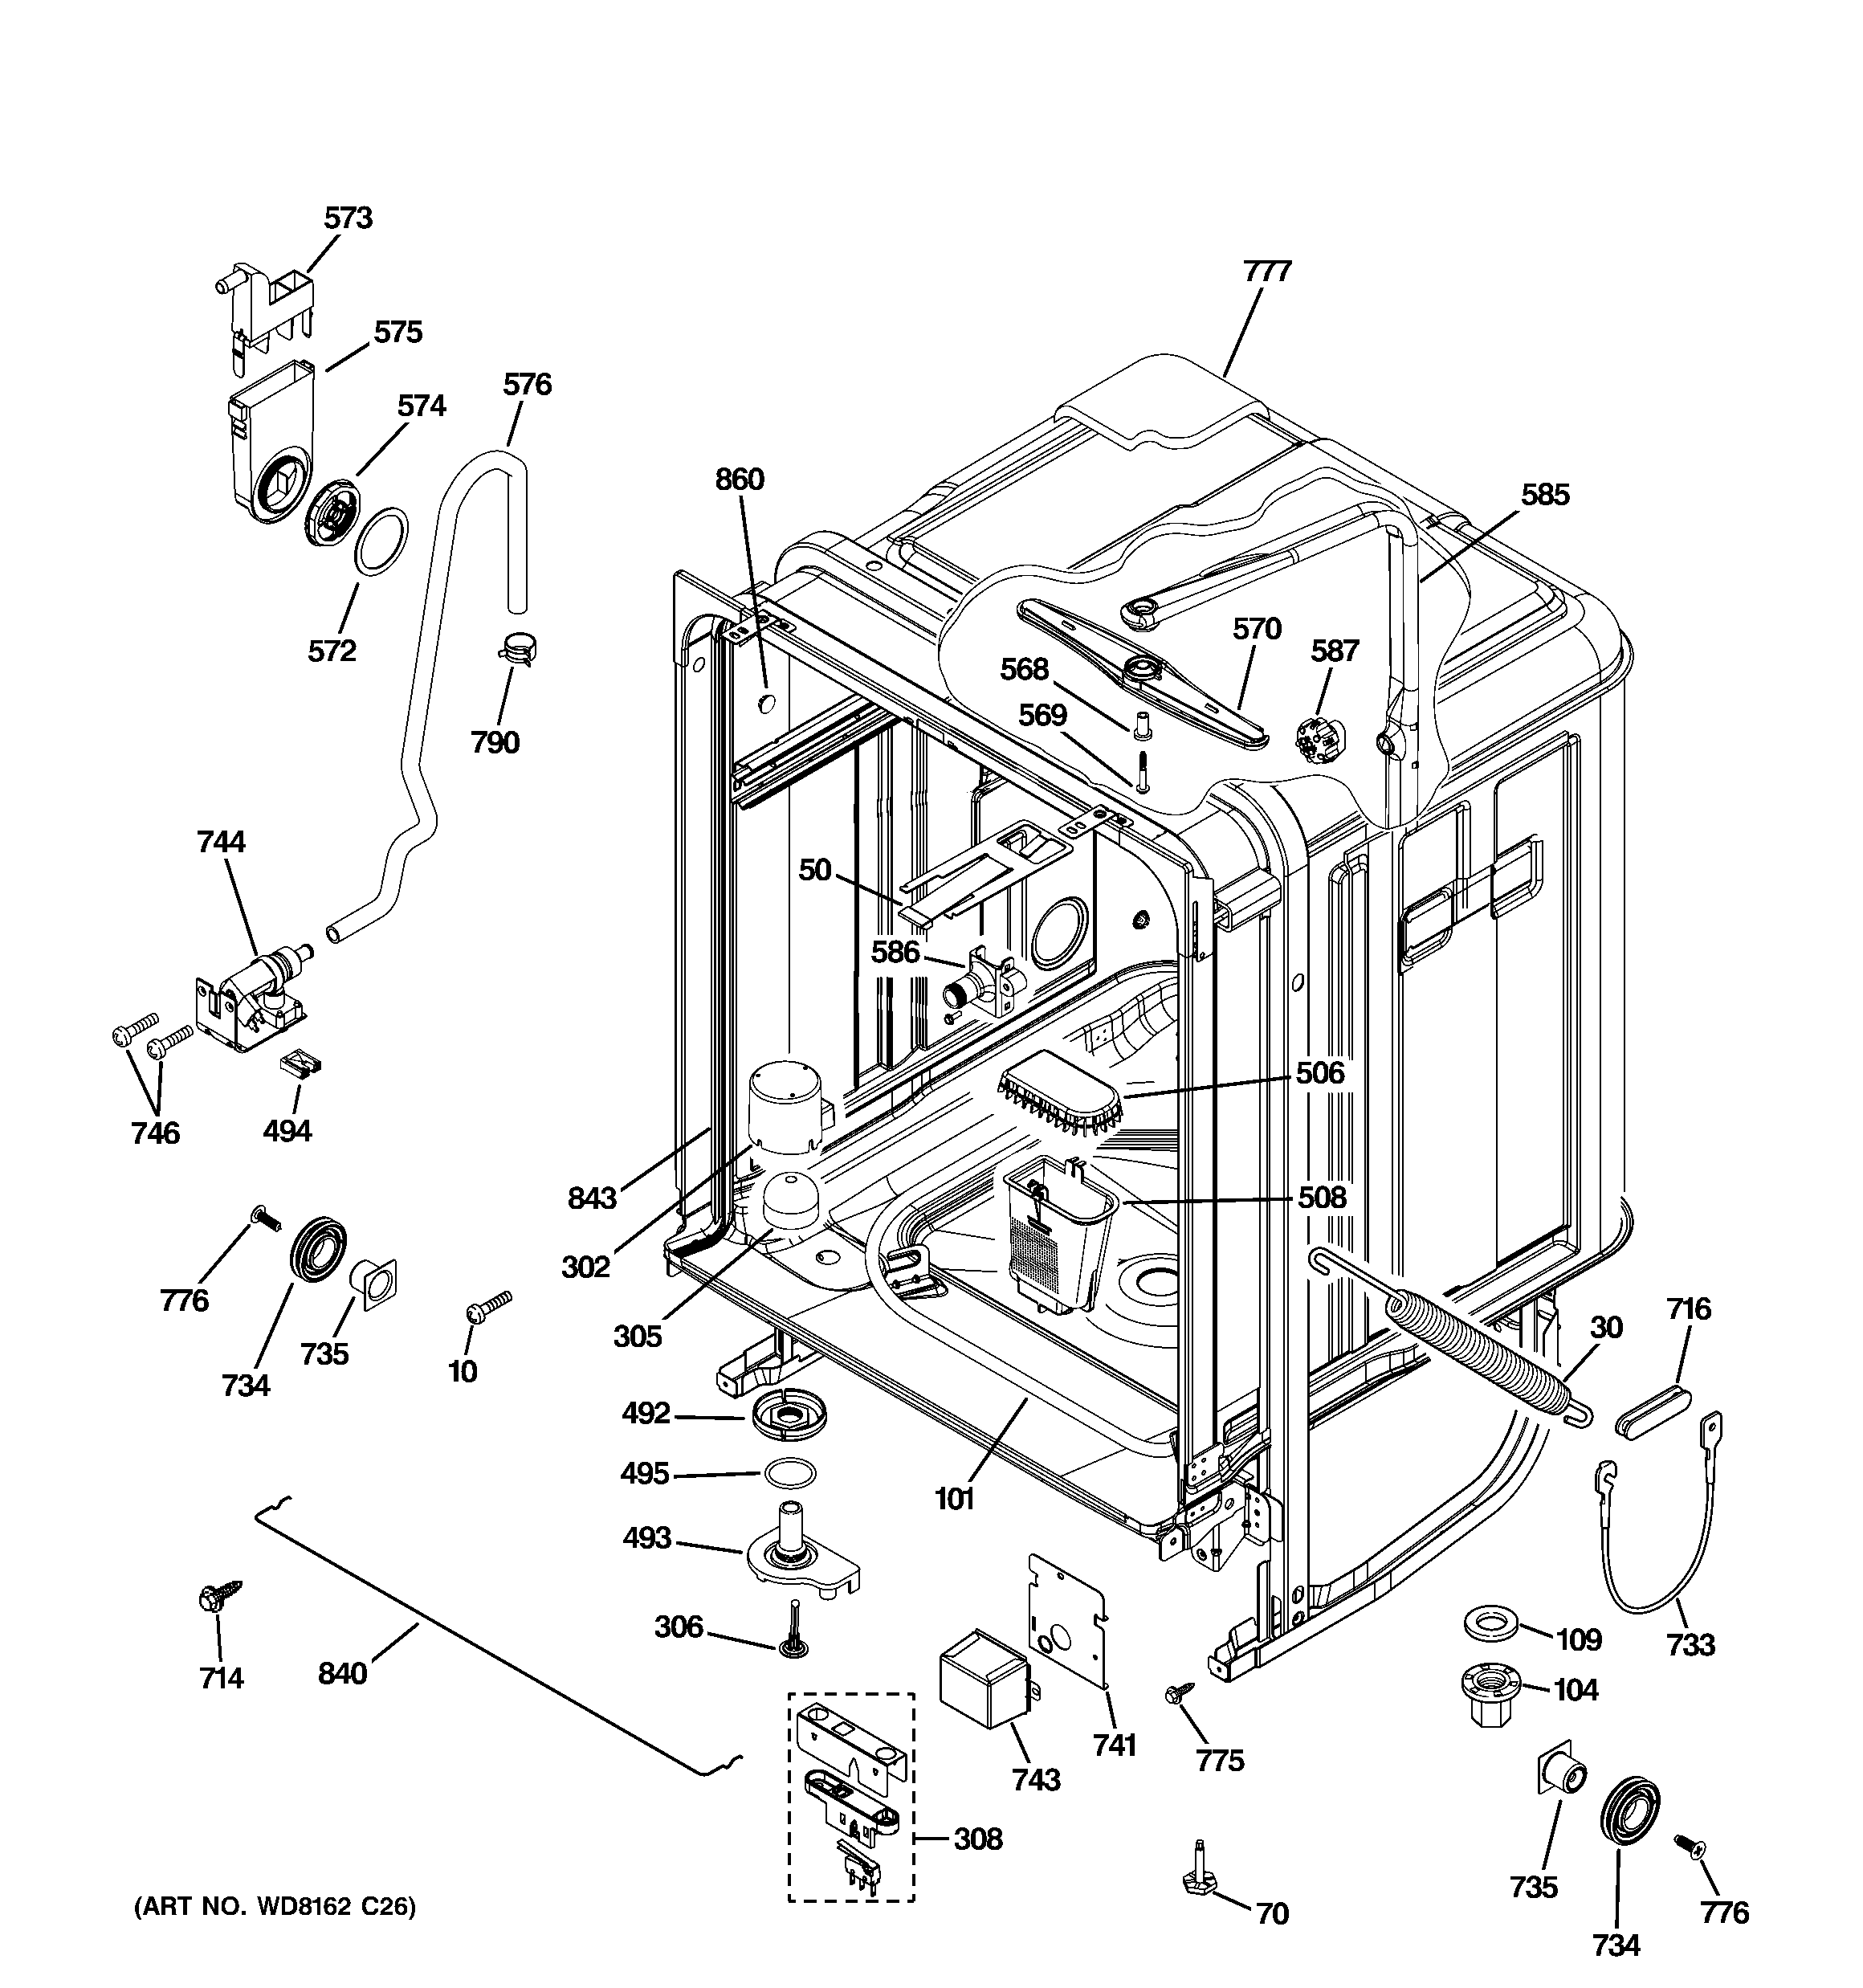 Bosch Dishwasher Parts: Bosch Dishwasher Parts Exploded View